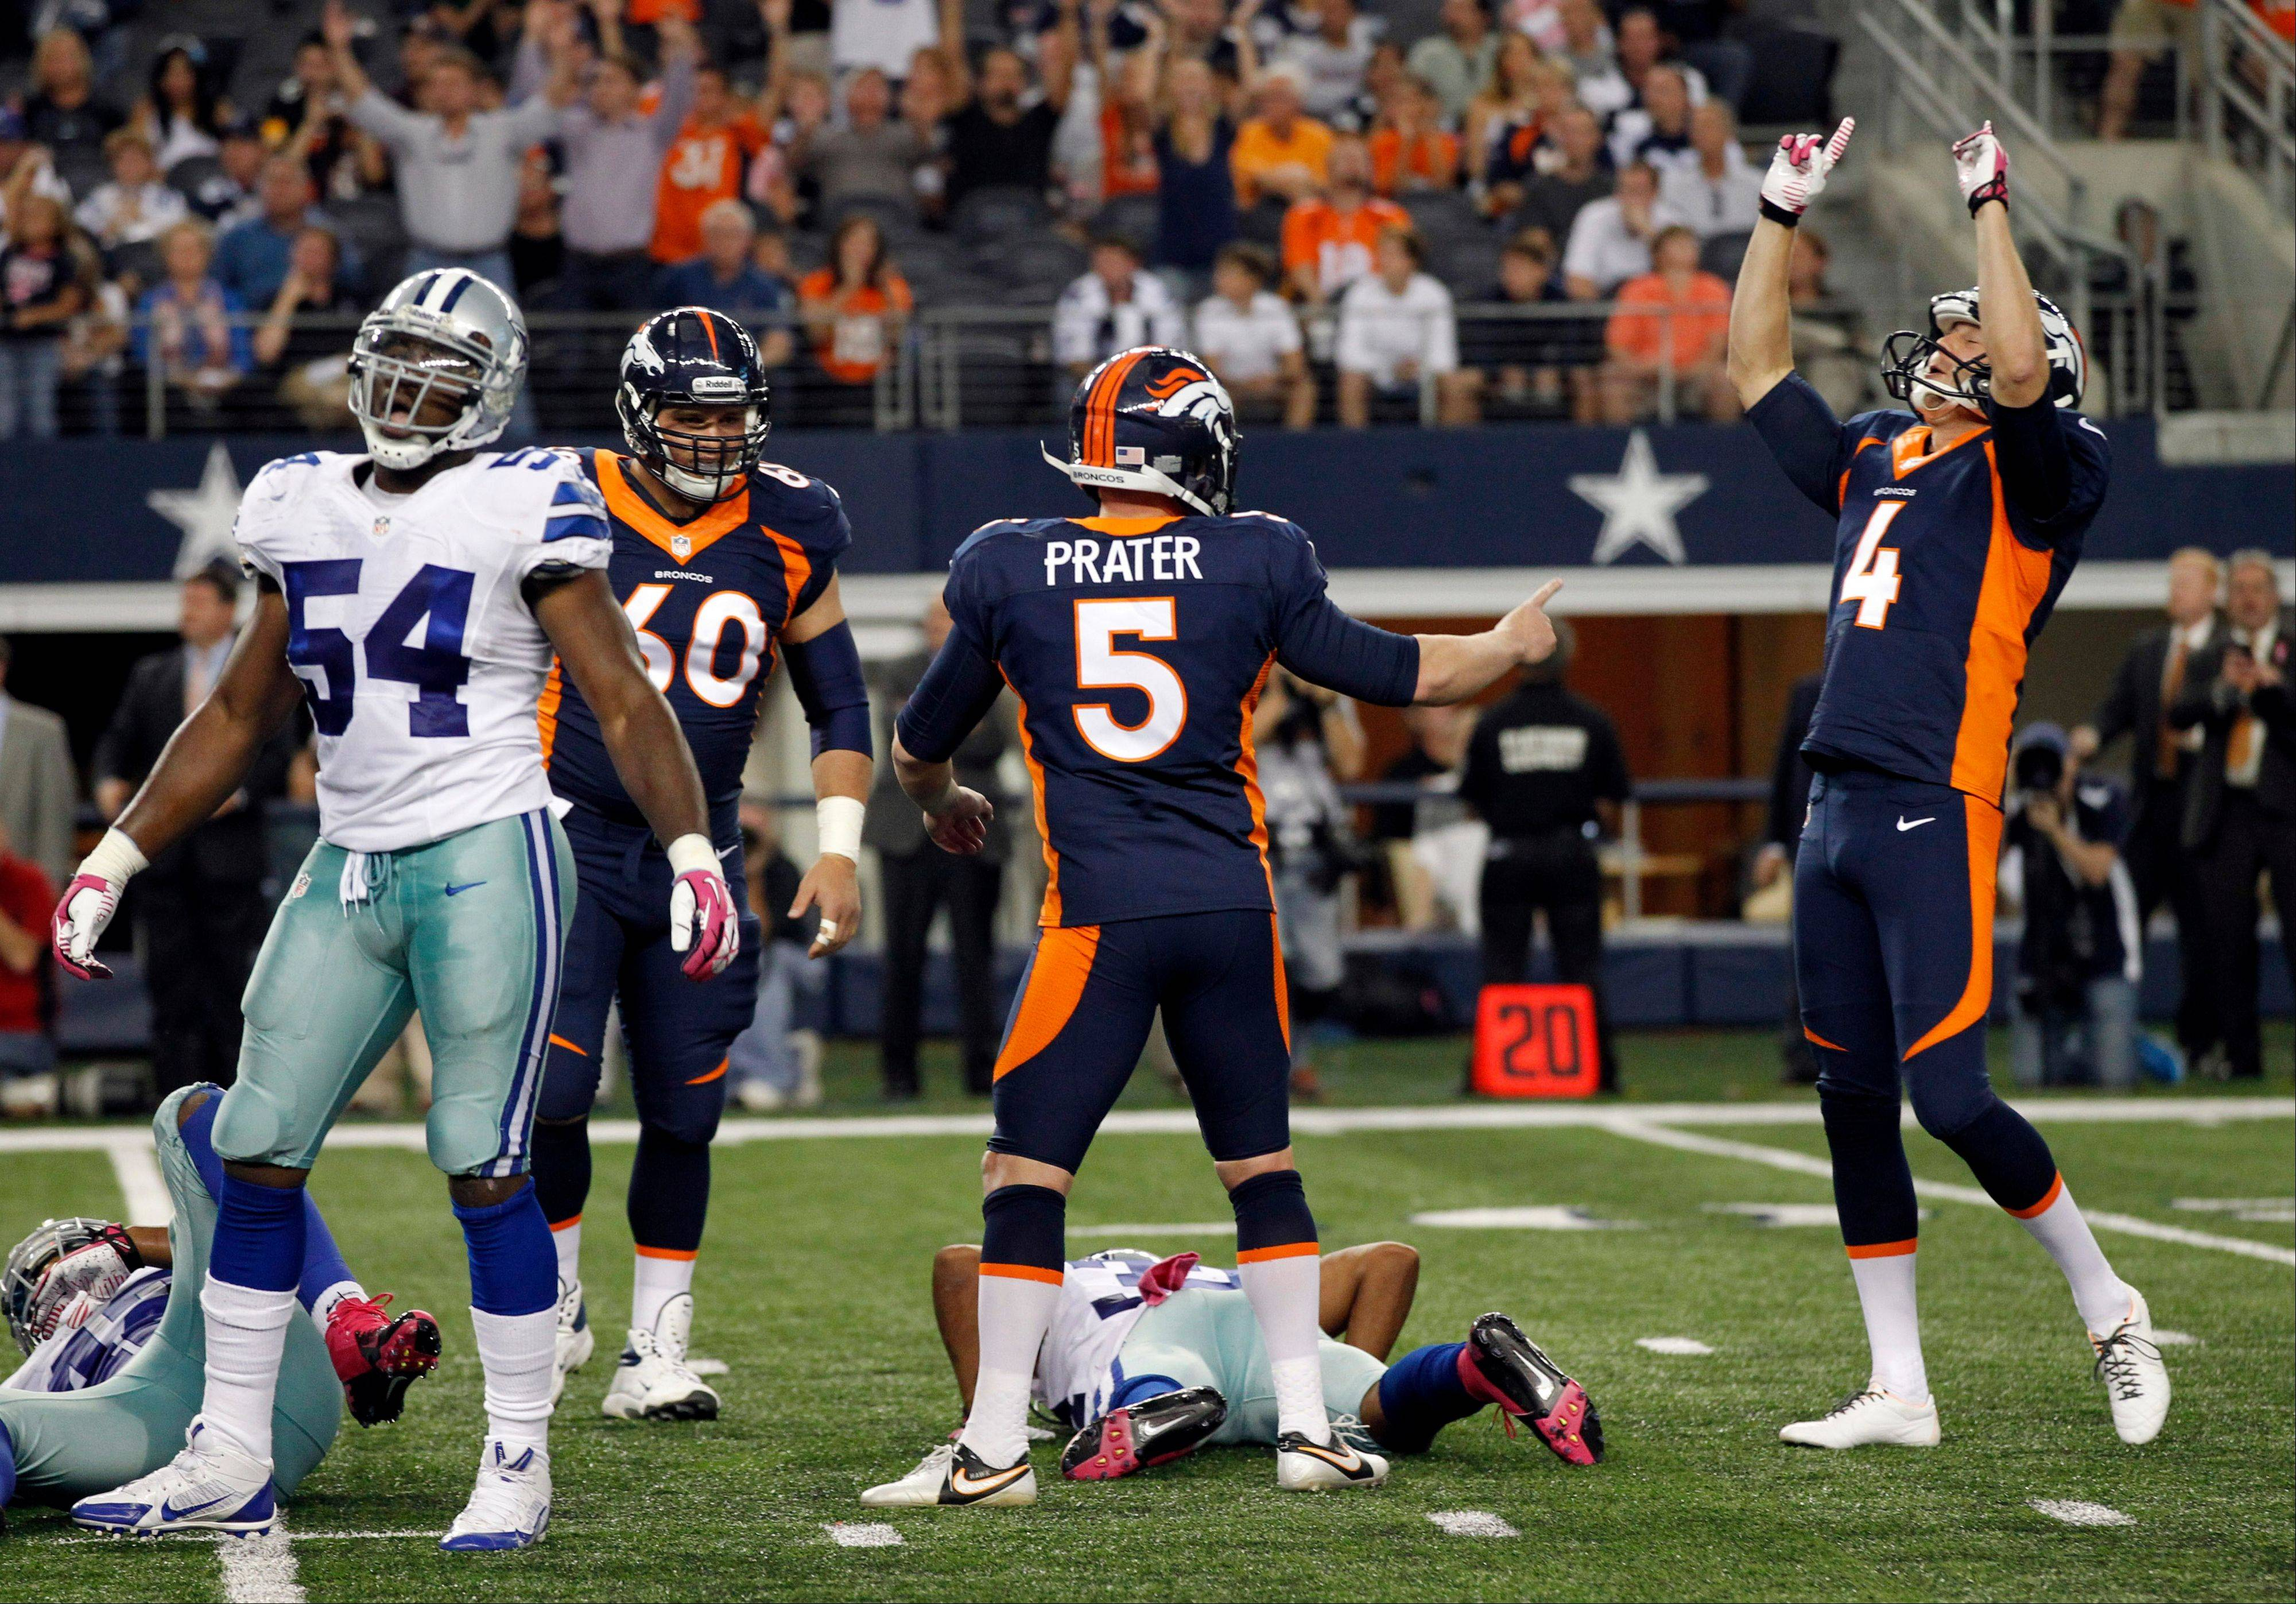 After Denver Broncos kicker Matt Prater (5) made the game-winning field goal against the Dallas Cowboys, he is joined in celebration by Britton Colquitt (4) and Steve Vallos (60) as Bruce Carter (54) reacts during the fourth quarter of an NFL football game Sunday, Oct. 6, 2013, in Arlington, Texas. The Broncos won 51-48.